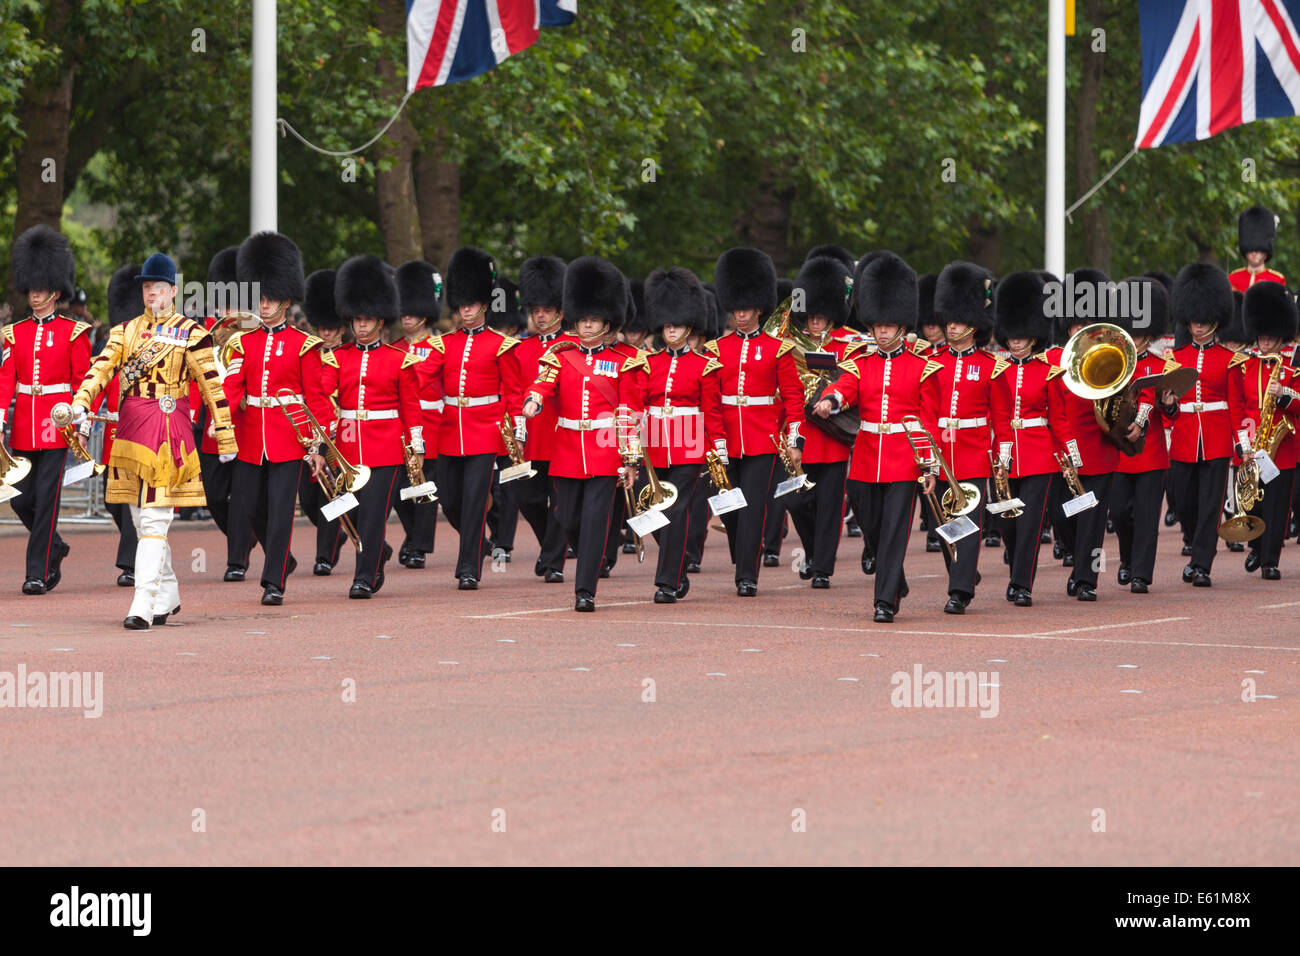 royal her photo museum outdoor stock bands in marching the eastney photos band concert massed at majesties by marine marines